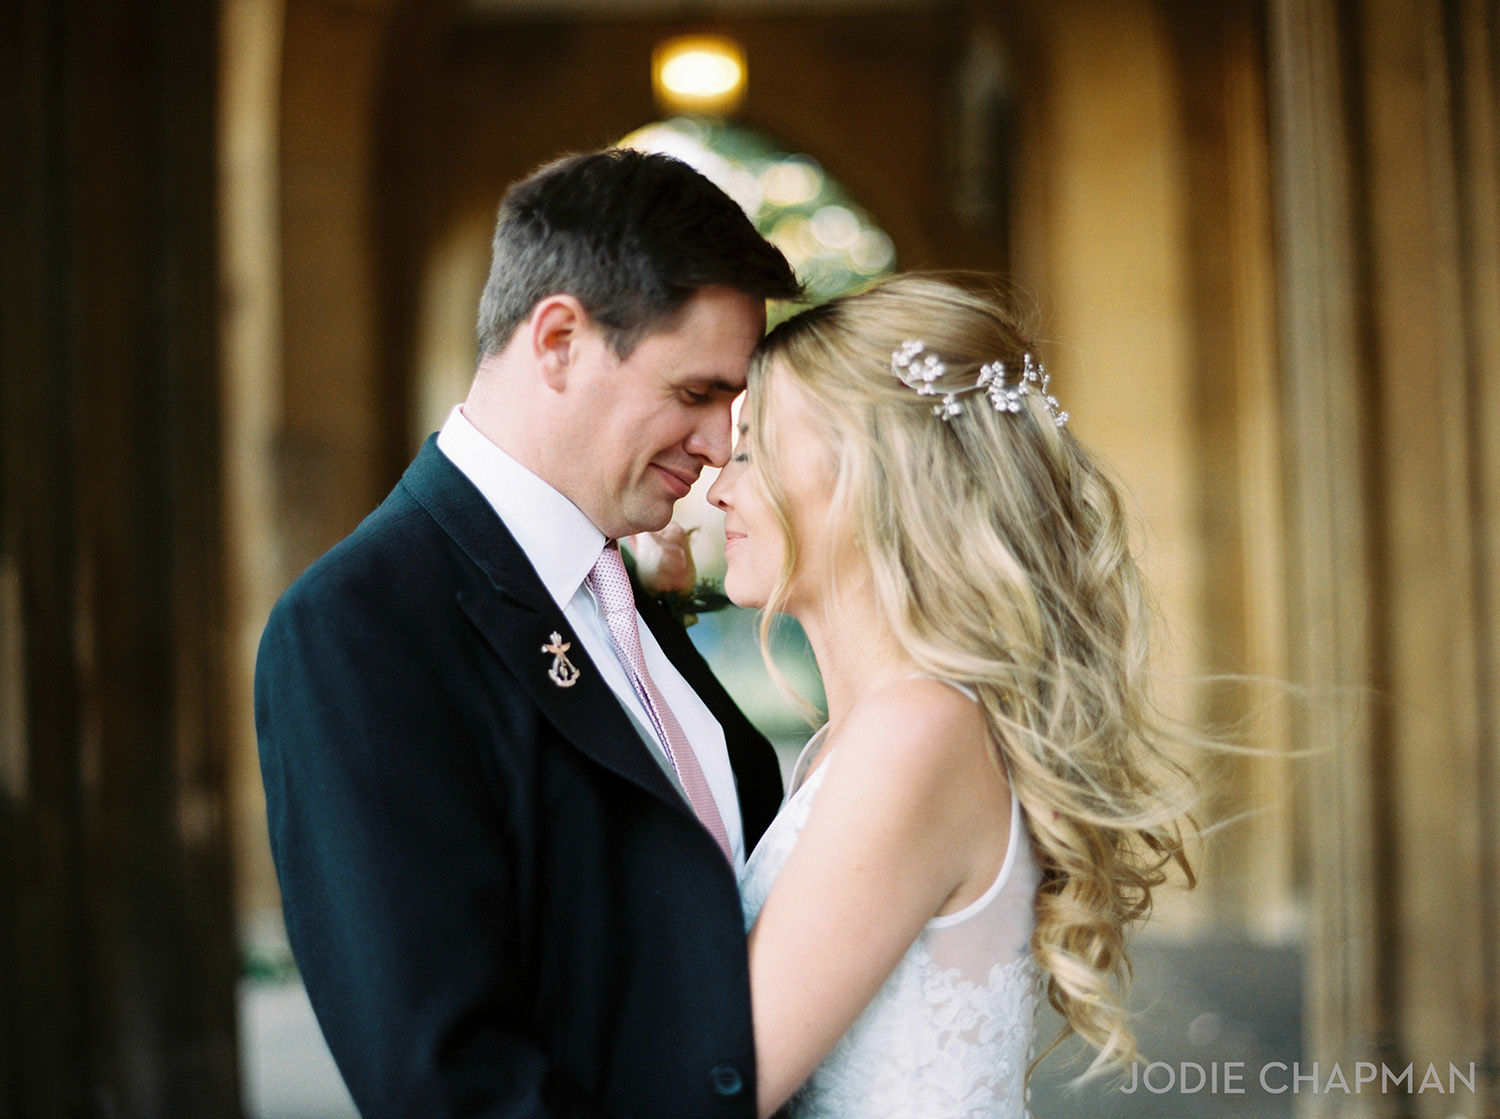 image of a bride and groom at a wedding at st lukes church chelsea